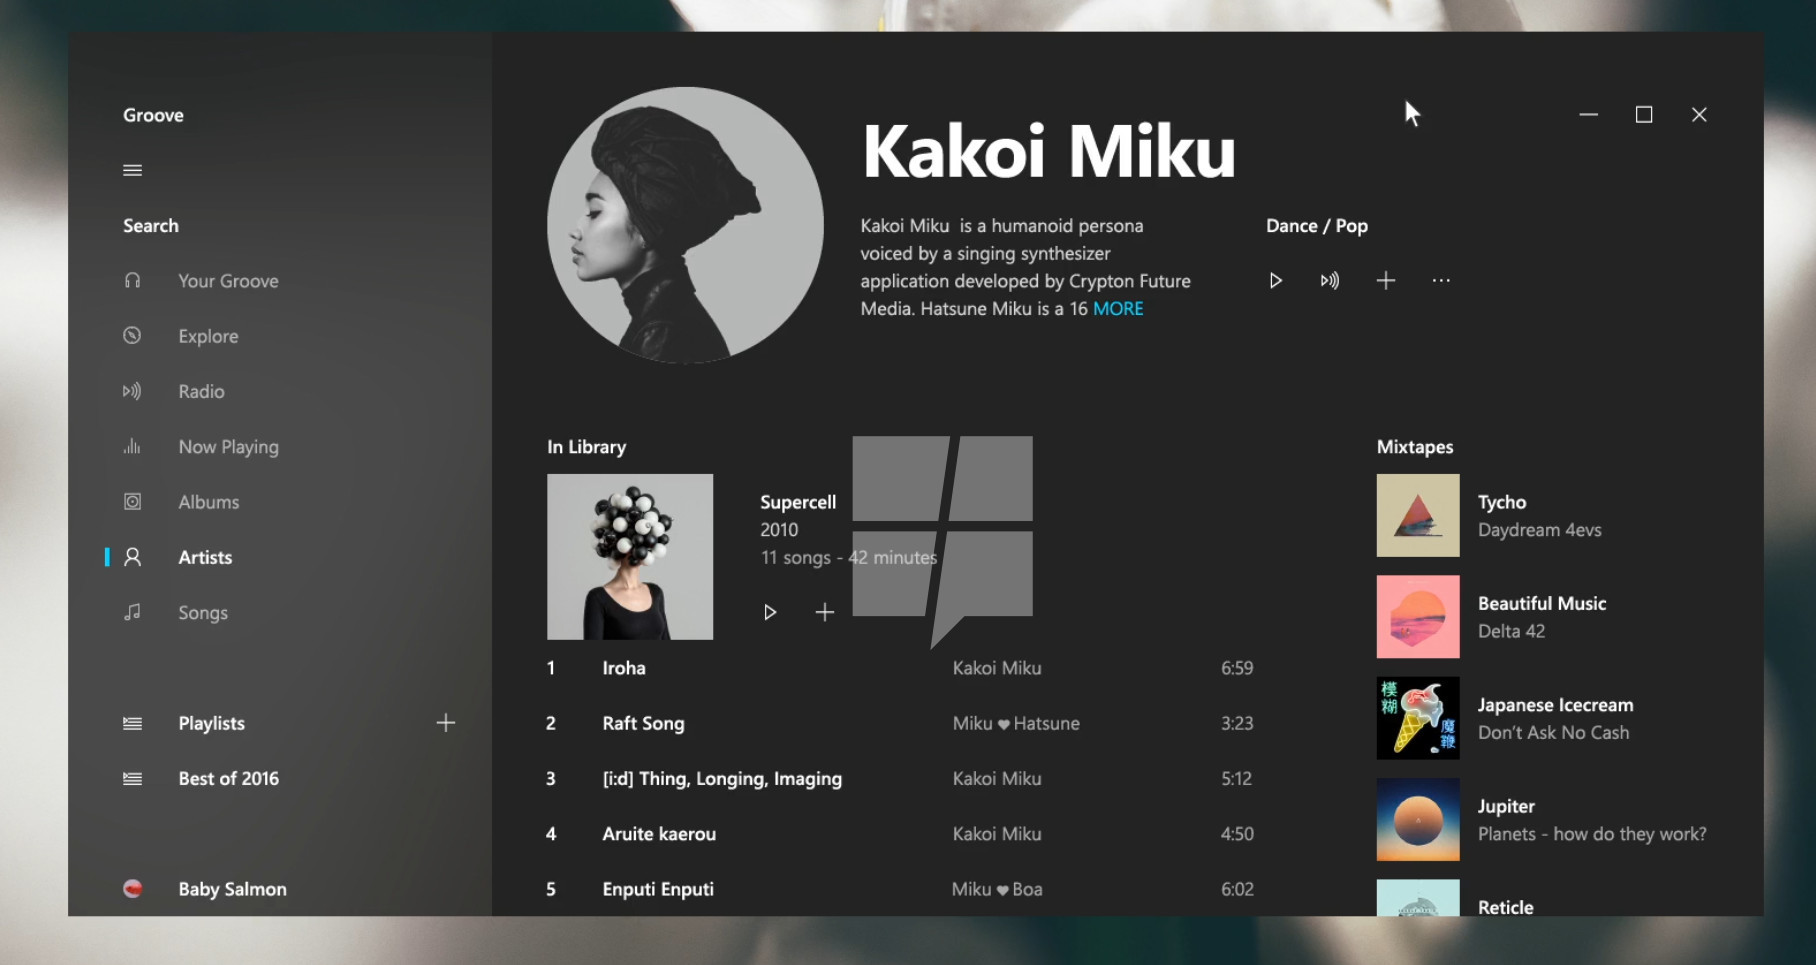 Project Neon Screenshots Preview Upcoming Design Changes To Windows 10 S User Interface Neowin